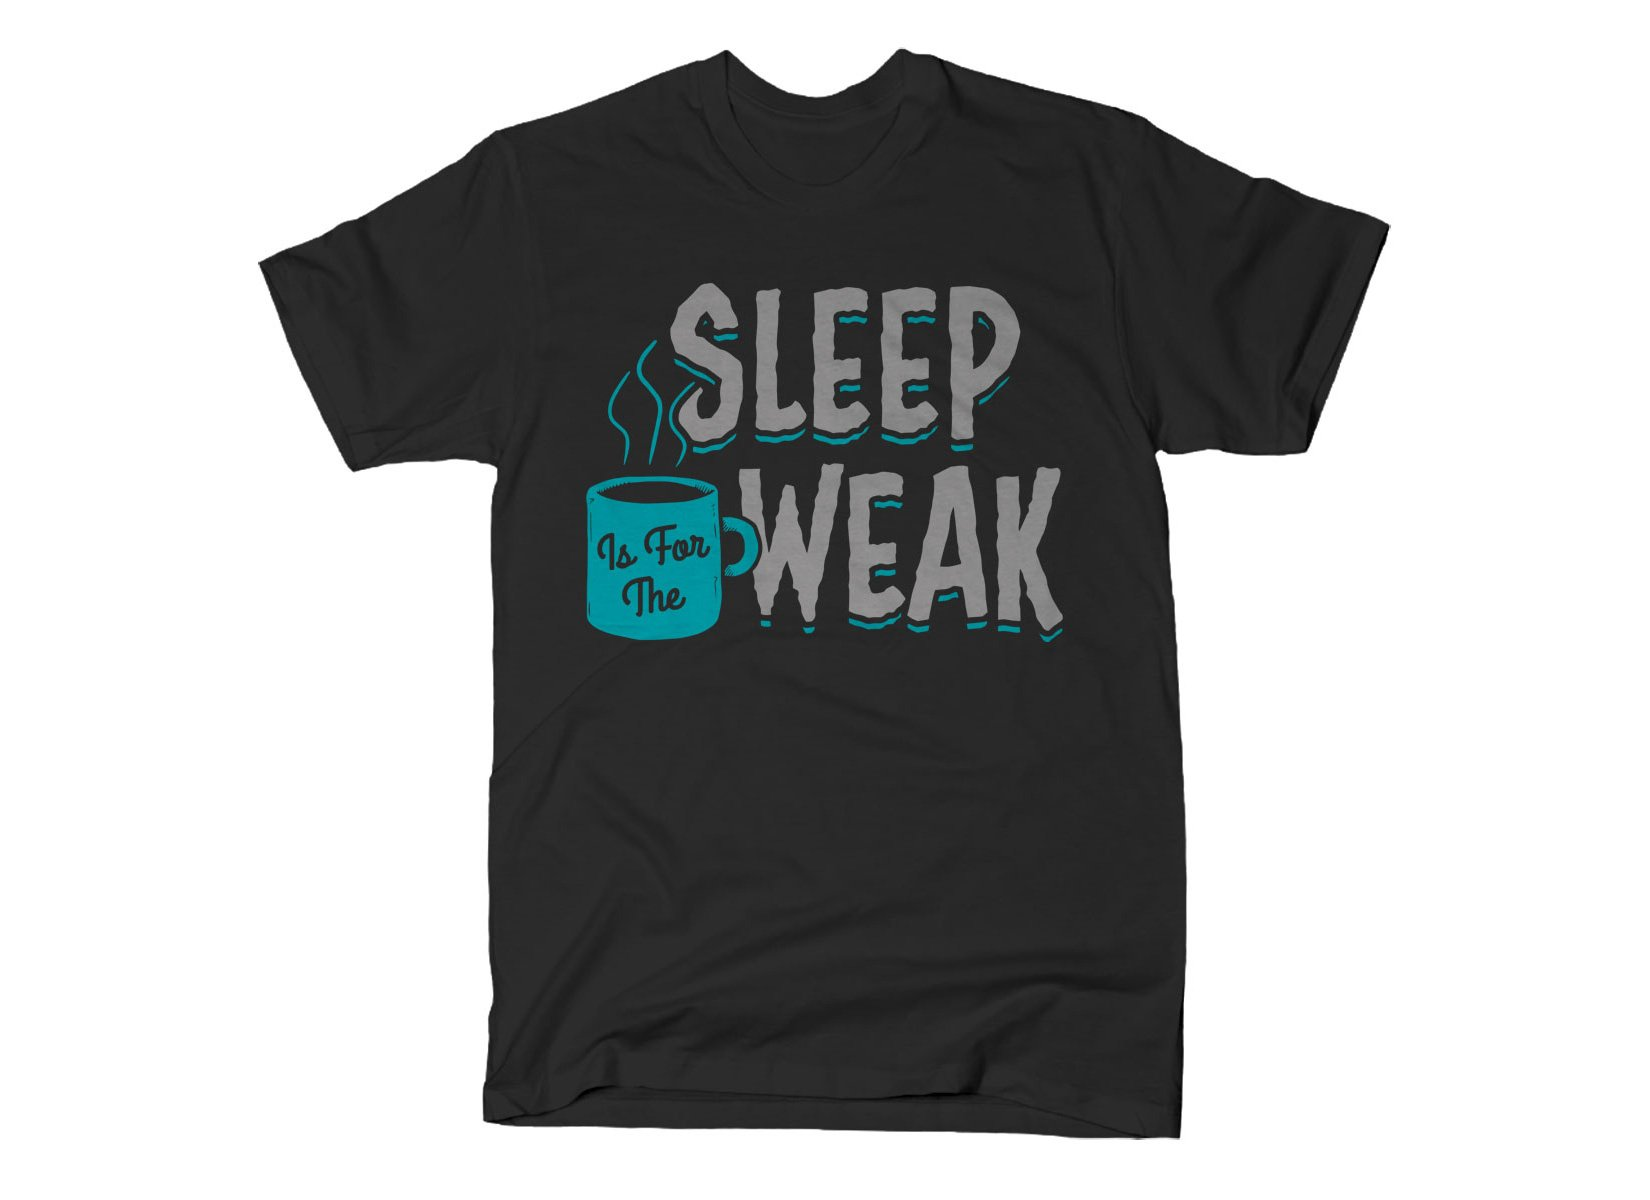 Sleep Is For The Weak on Mens T-Shirt